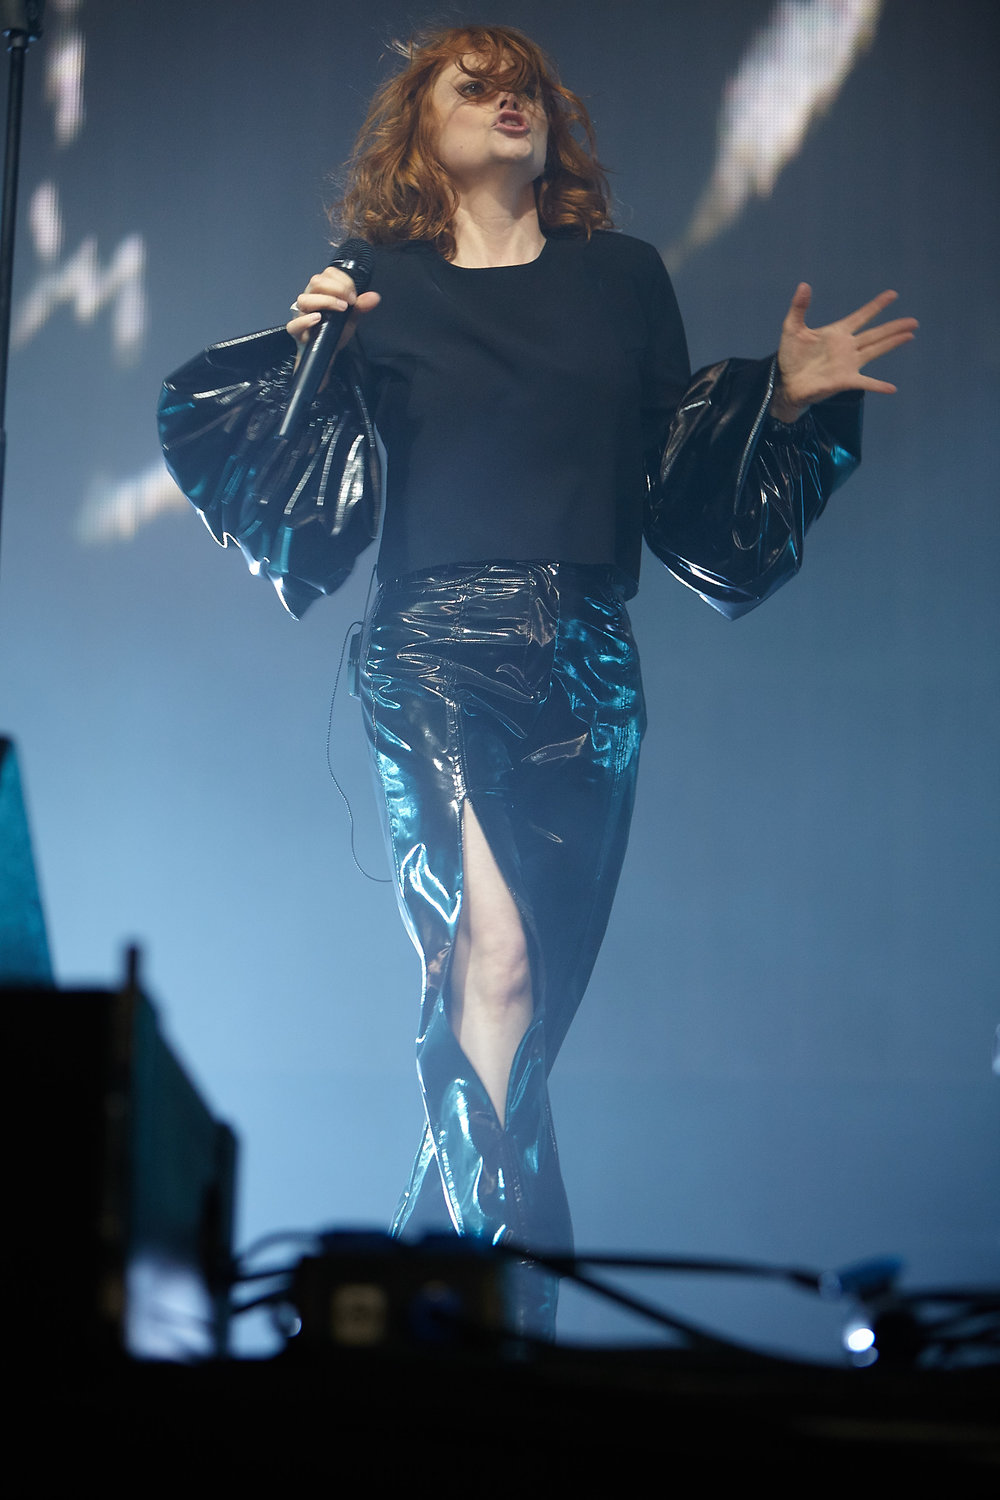 Goldfrapp @ Glastonbury 2017© Marc Aitken 2017 16.jpg